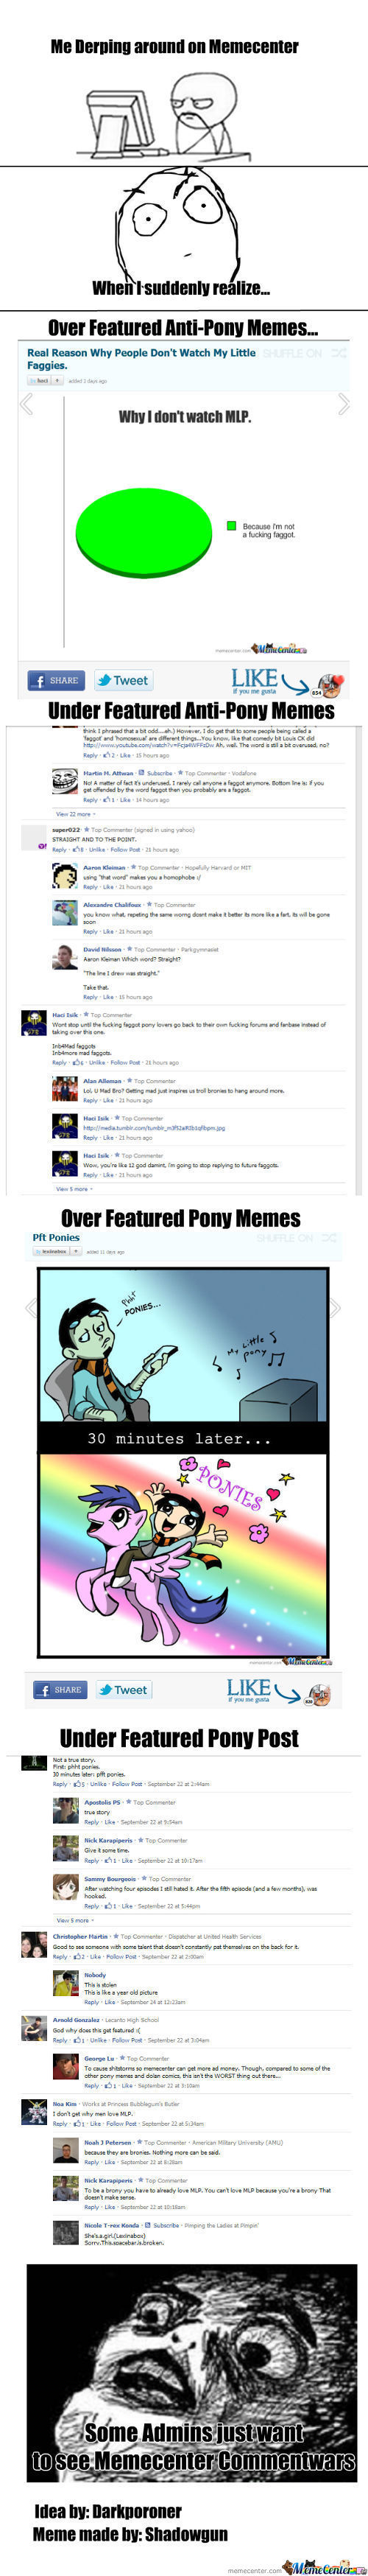 Some Admins Just Want To See Memecenter Commentwars